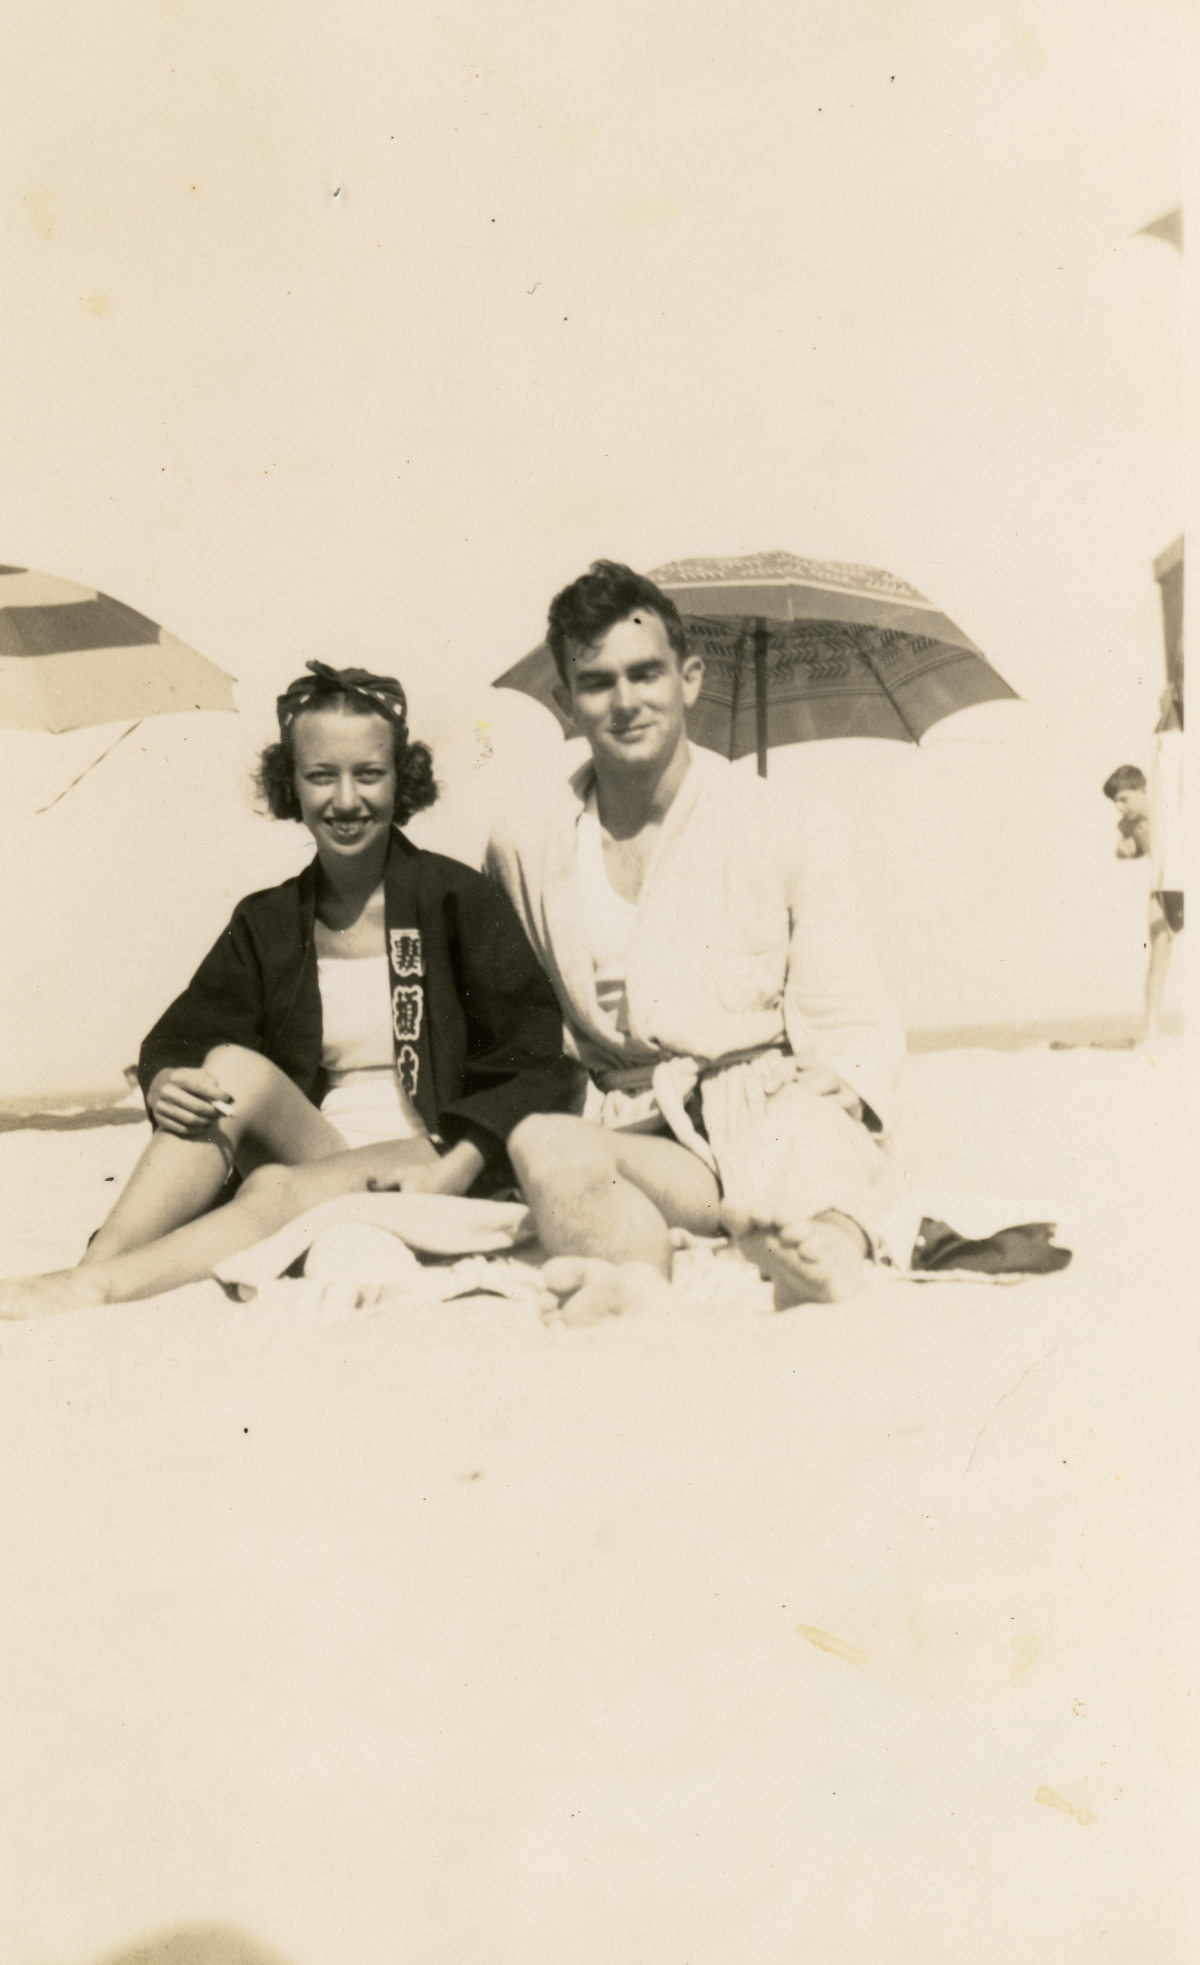 Portrait of Major General Albert H. Blanding's son William at the beach with fiancee Betty.